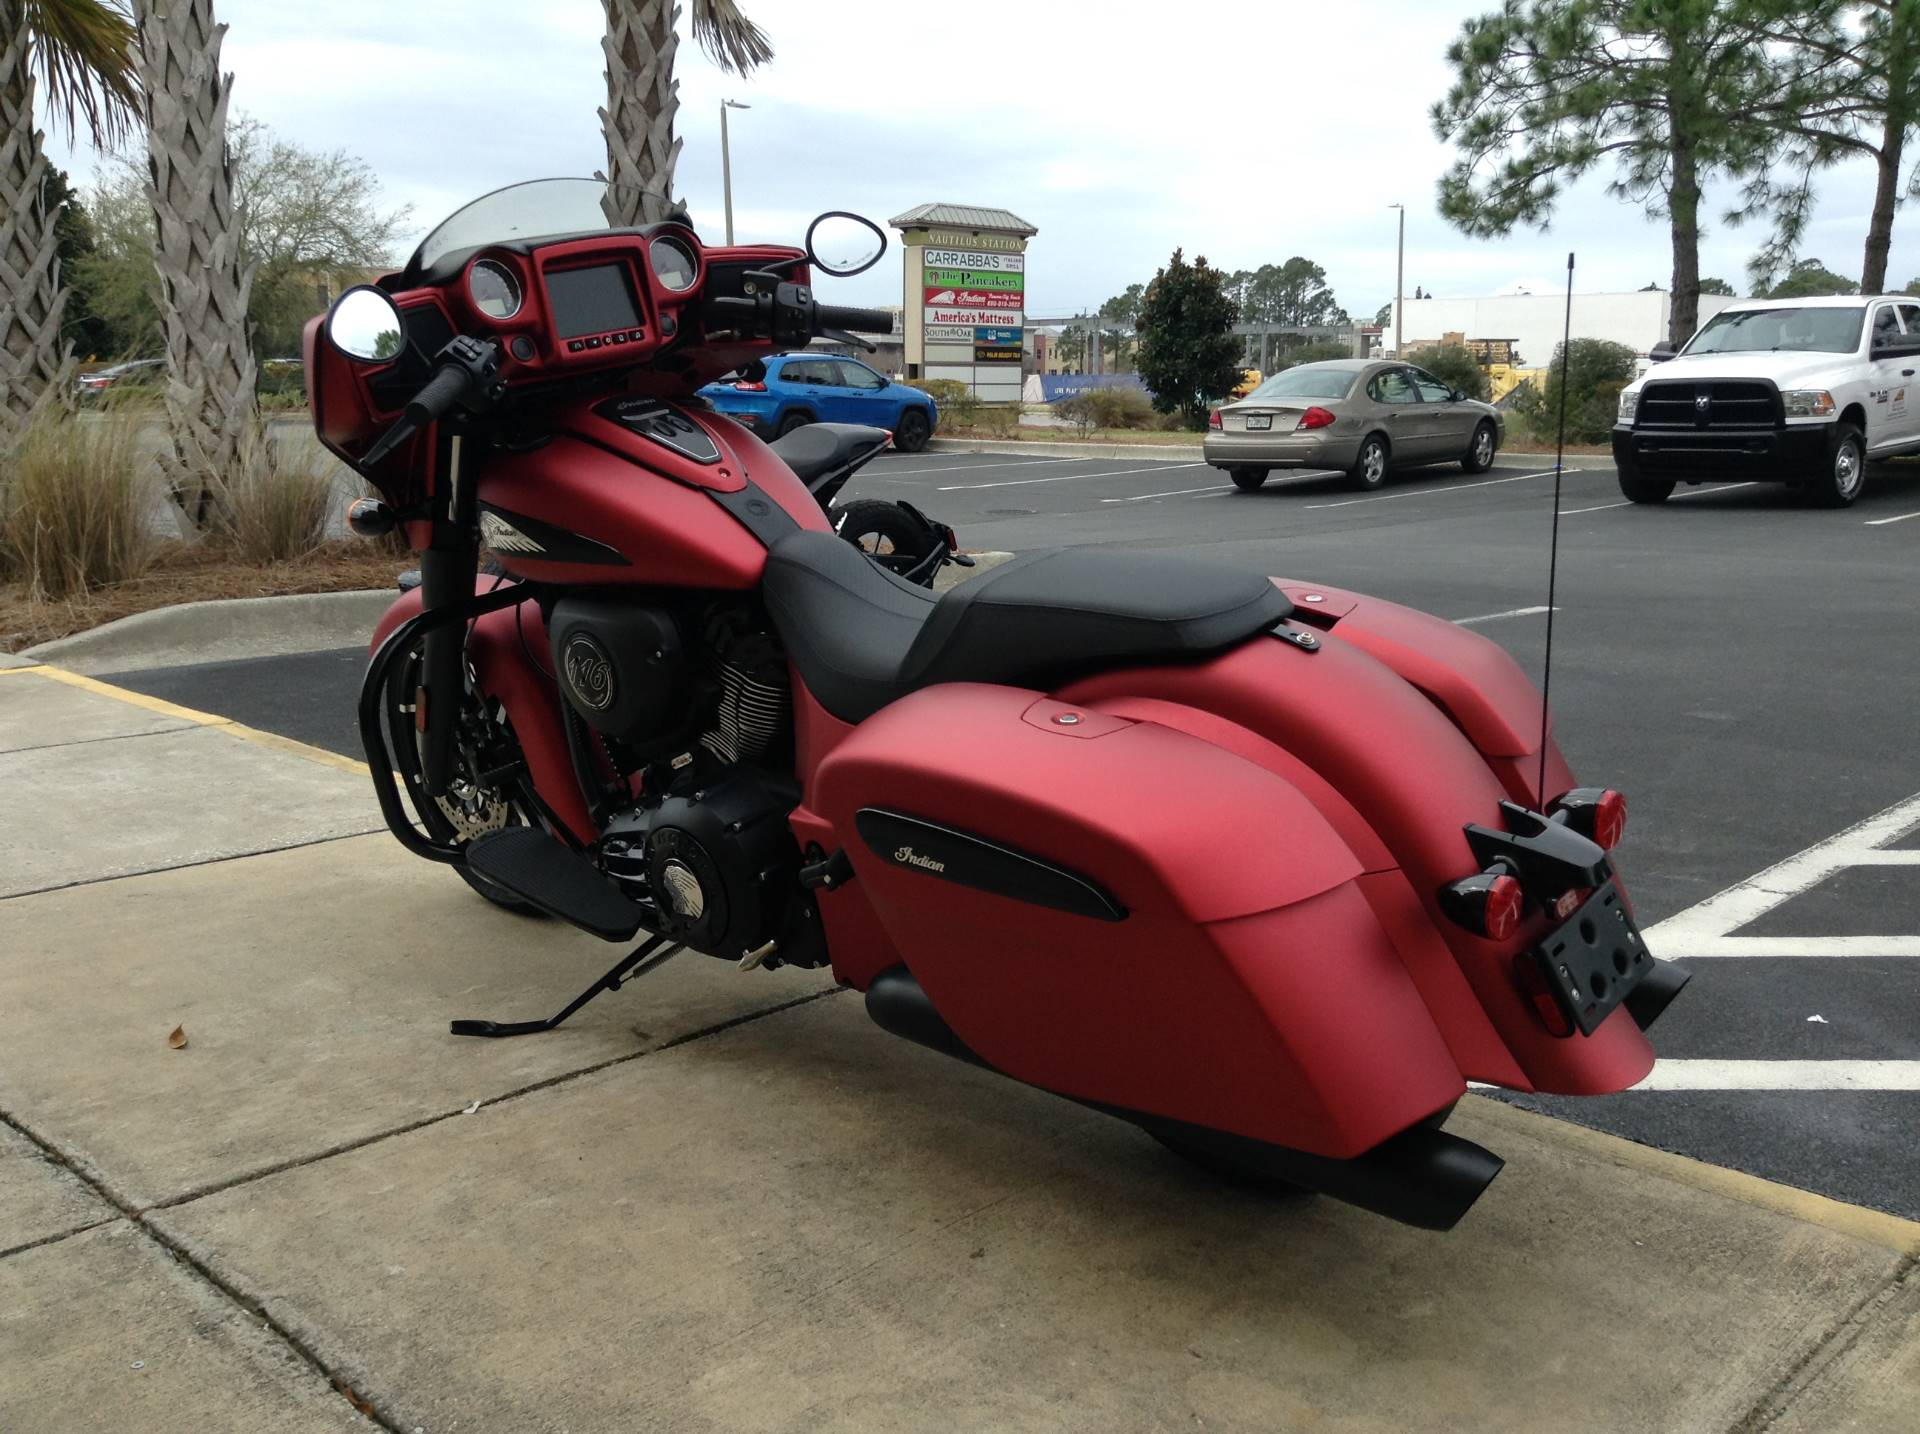 2020 Indian CHIEFTAIN DARKHORSE in Panama City Beach, Florida - Photo 6